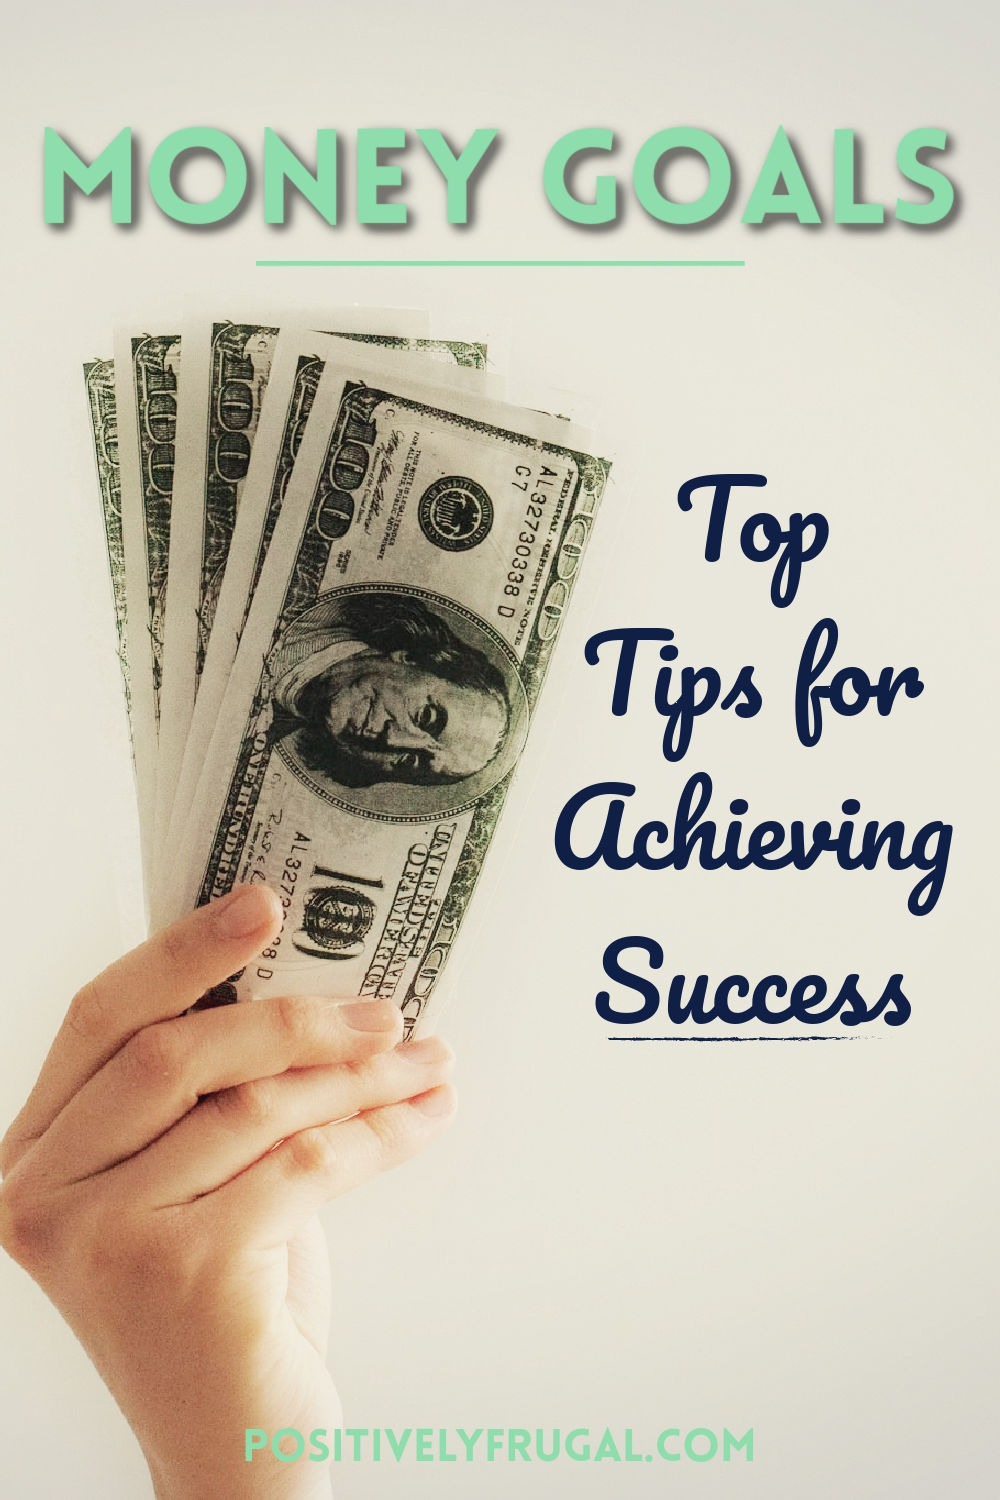 Tips for Achieving Money Goals by PositivelyFrugal.com